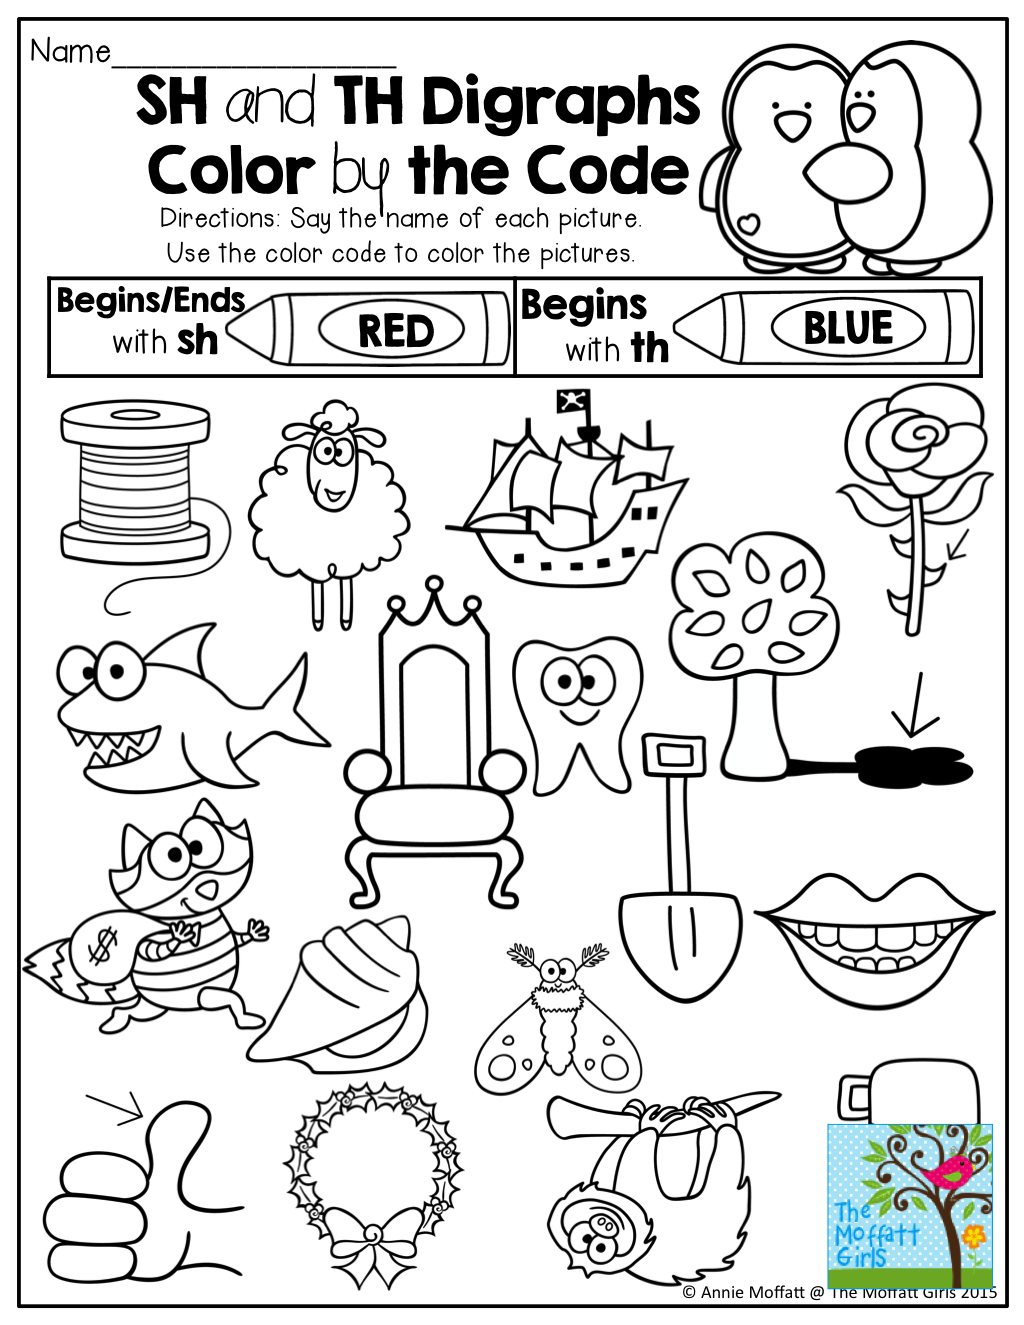 Beginning Digraphs! color by the code! TONS of fun and